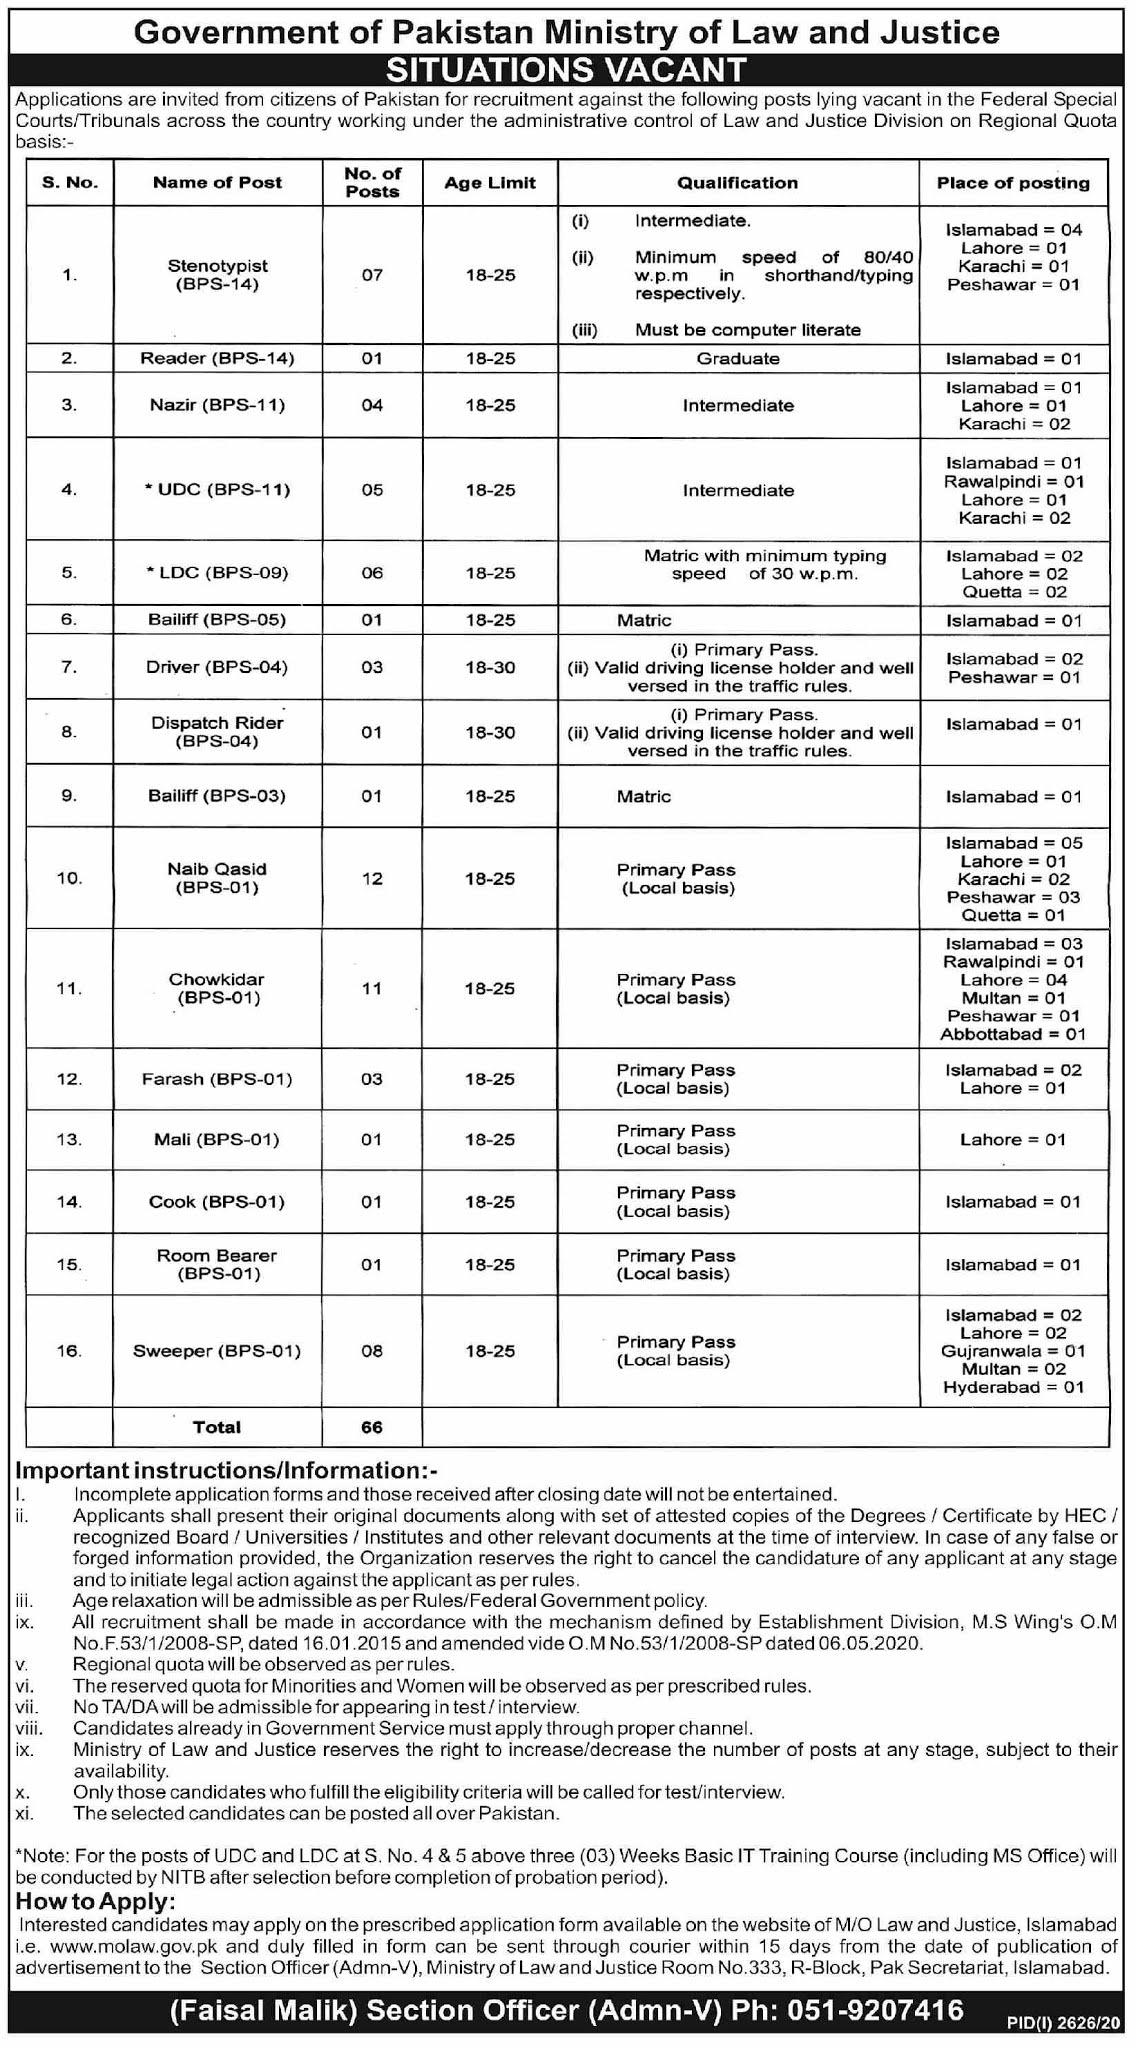 Ministry of Law & Justice Jobs in Pakistan For Primary, Middle, Matric, Intermediate Degree, Bachelor Degree Candidates Jobs 2021